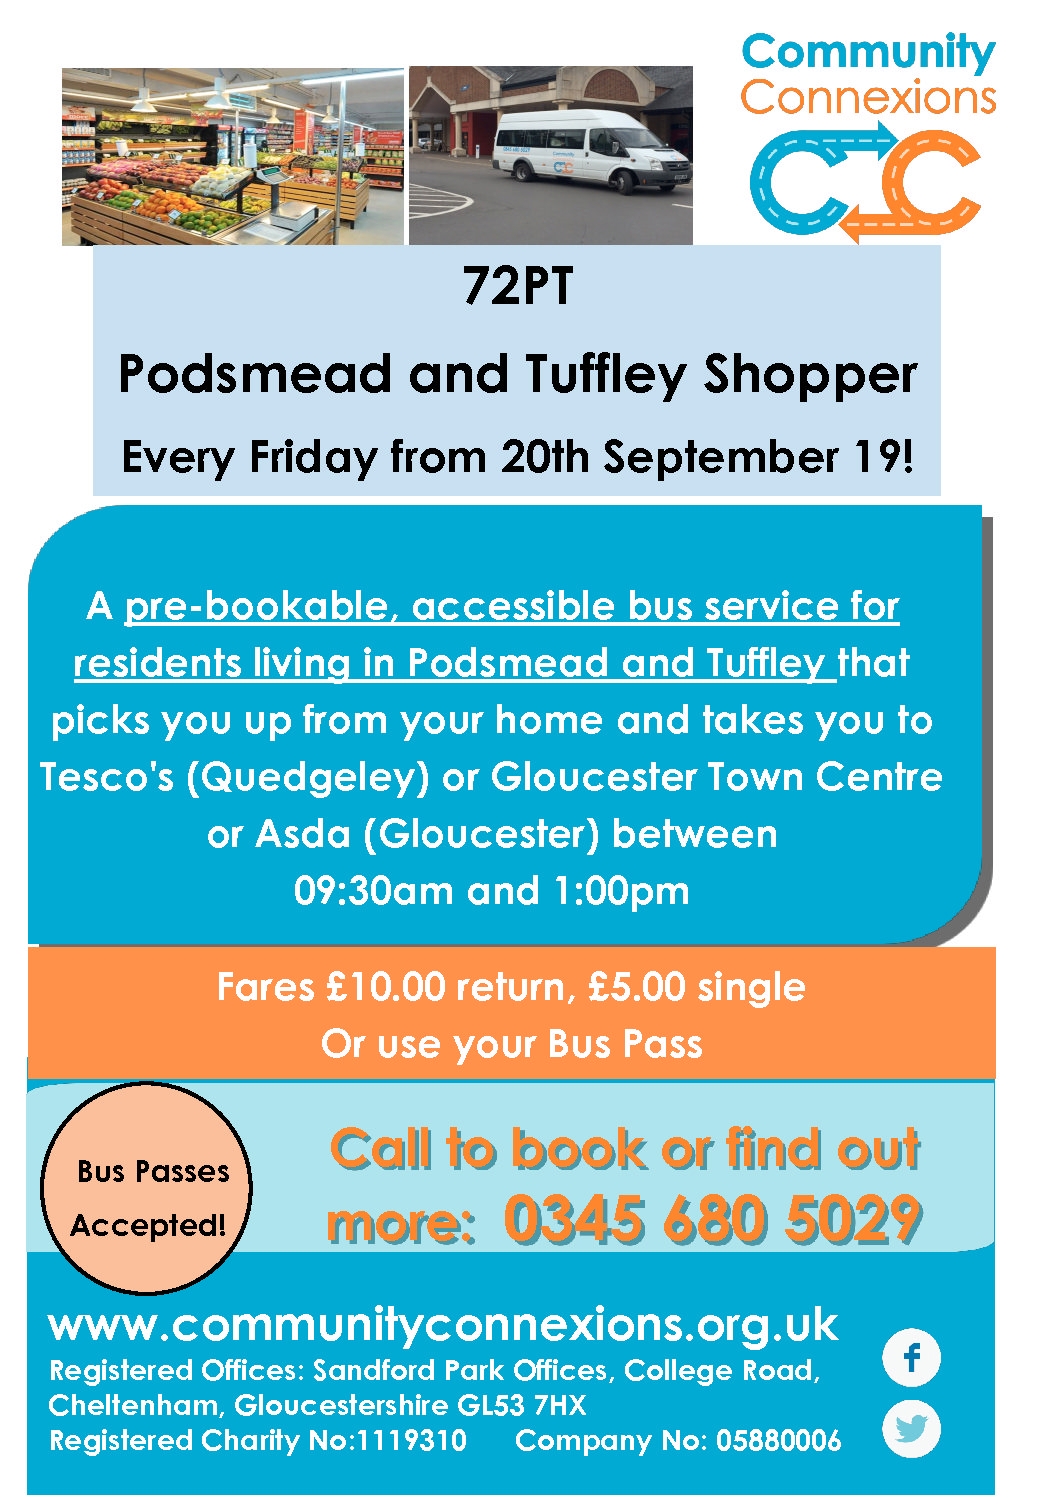 New Tuffley & Podsmead Shopper bus proposed